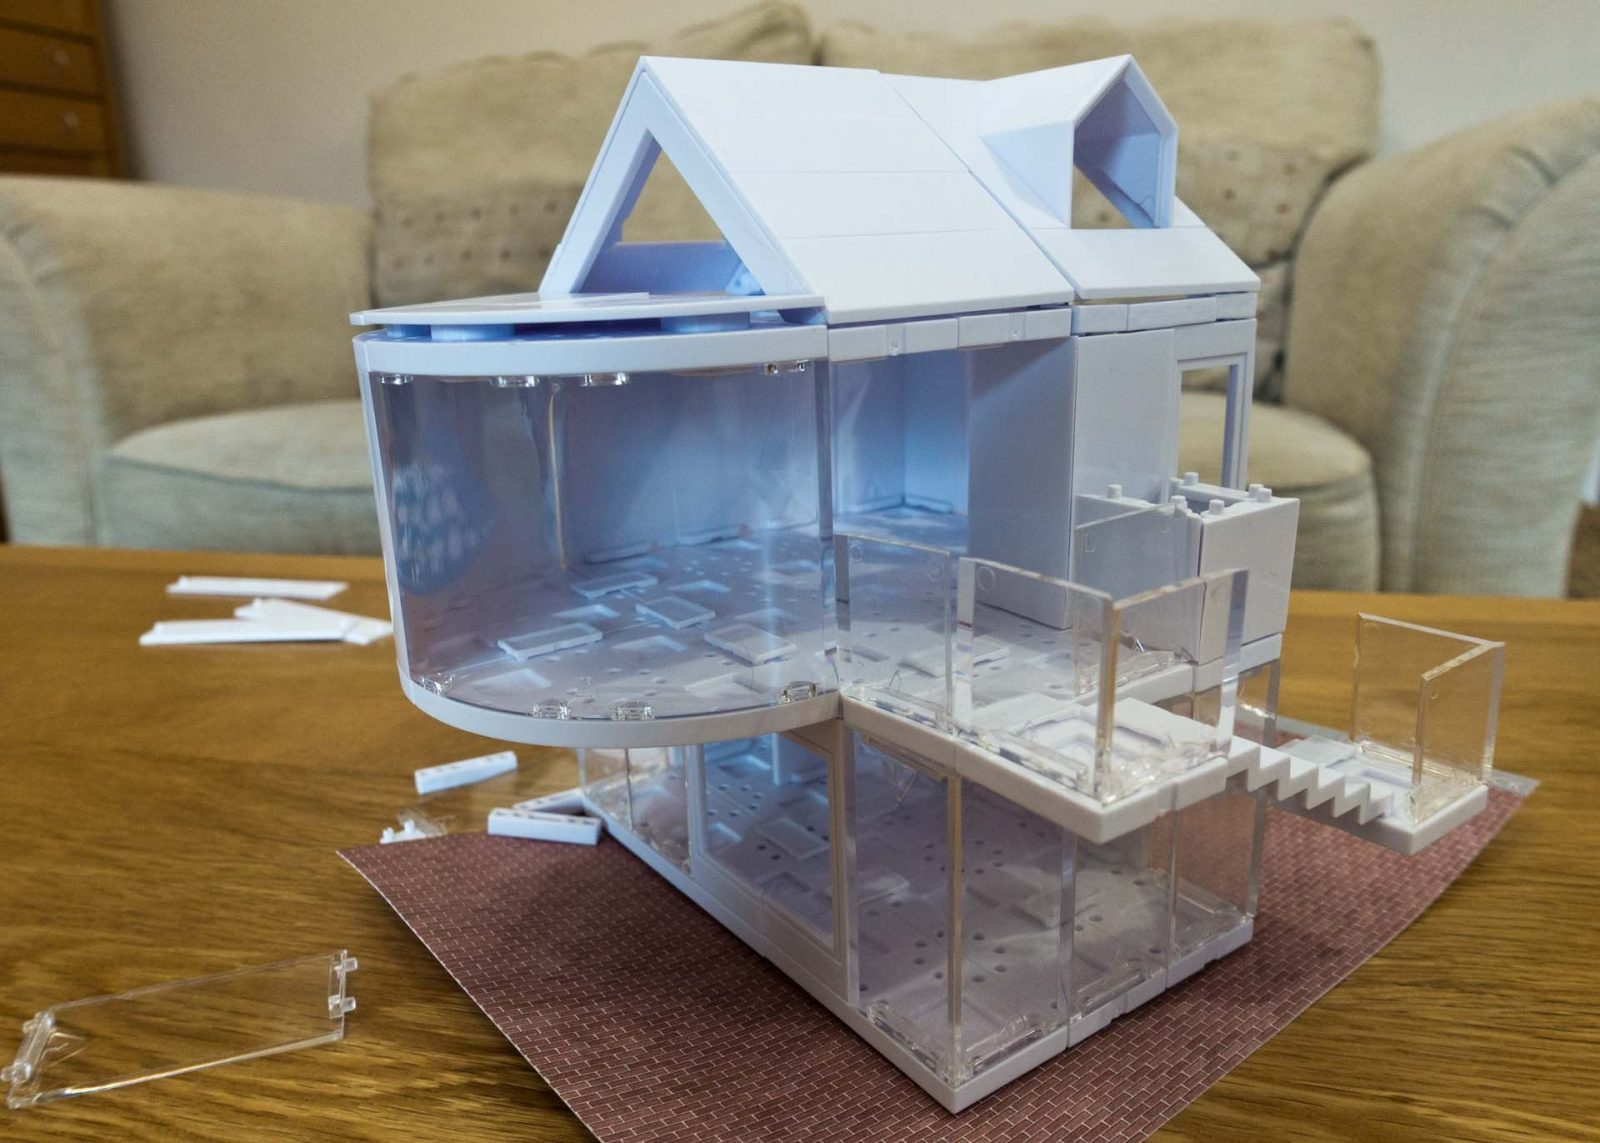 Arckit Architectural Model Building Kit - Review and Kickstarter on Falcondale Life blog. Play at building and create ideas like an architect. Model house designs. No glue or mess, perfect for older children. New product ranges via Kickstarter.